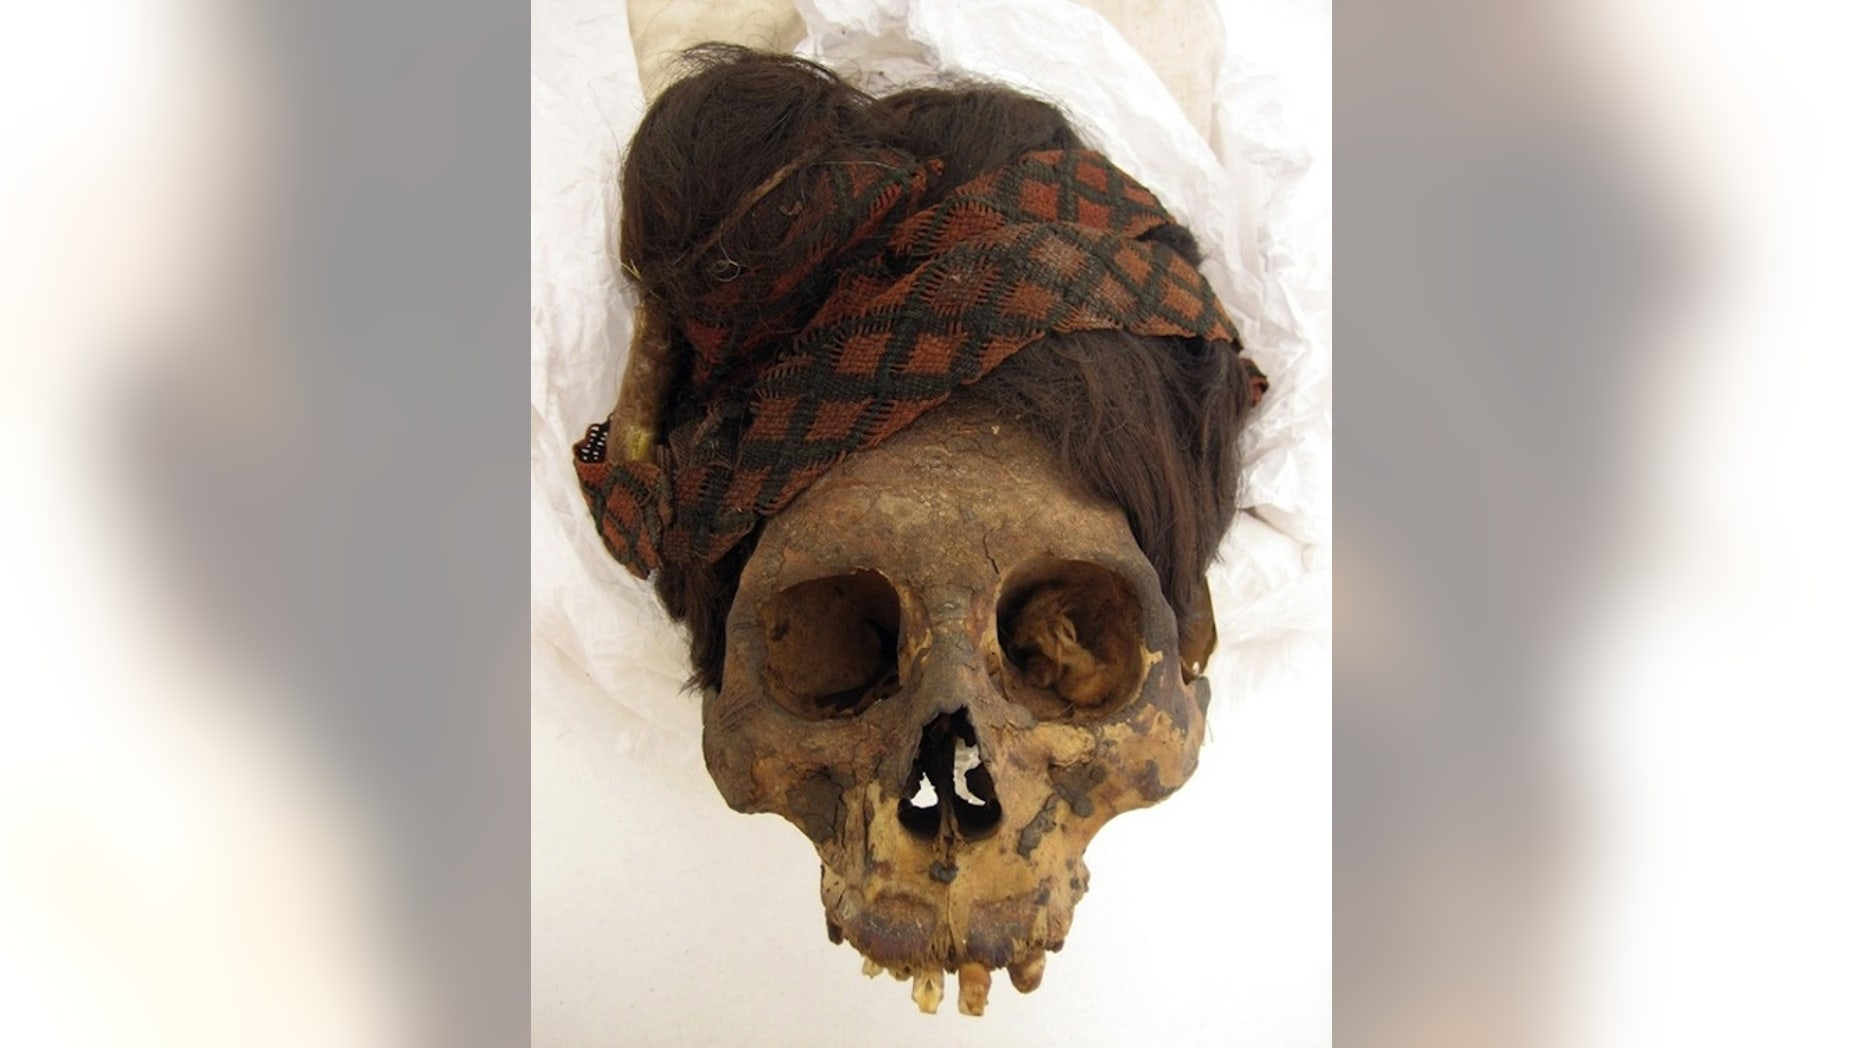 To learn more about the mummies' diets, the researchers took hair samples from 14 individuals and two hair artifacts found at the Paracas Necropolis. This individual wears a red and black headdress.